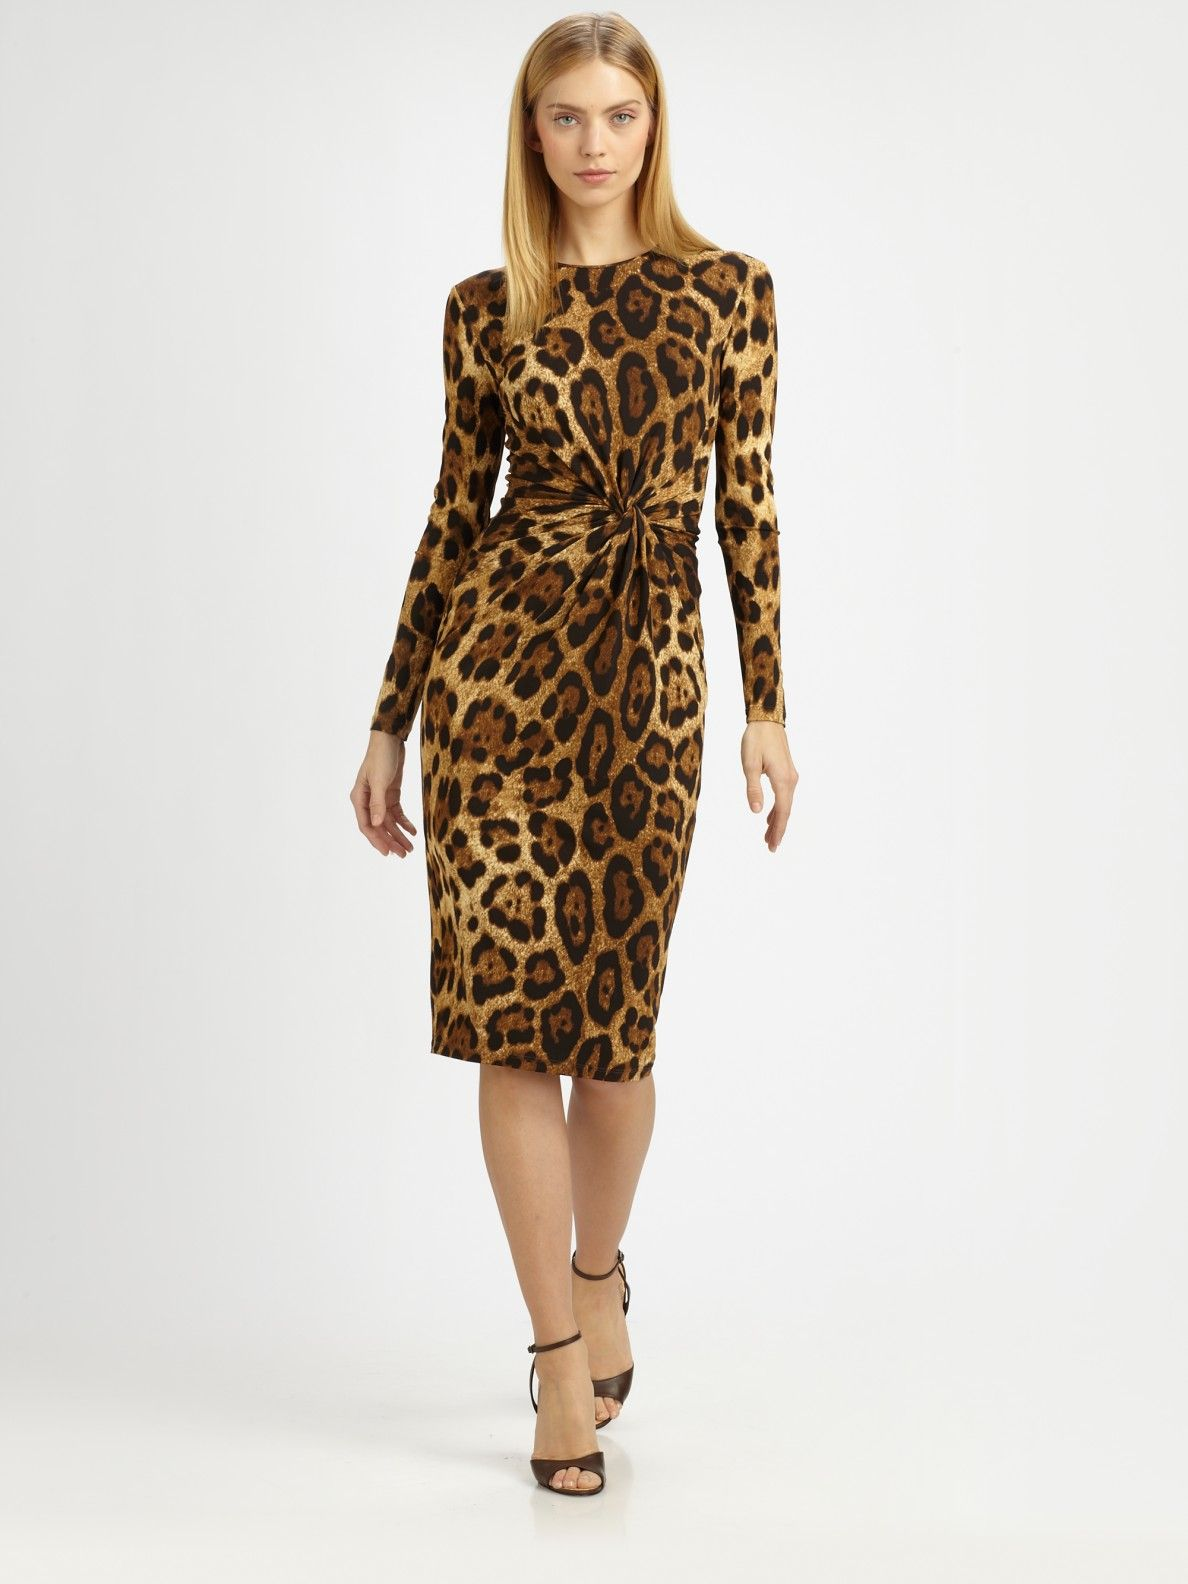 6a7309ef8937 michael kors leopard print dress in brown lyst